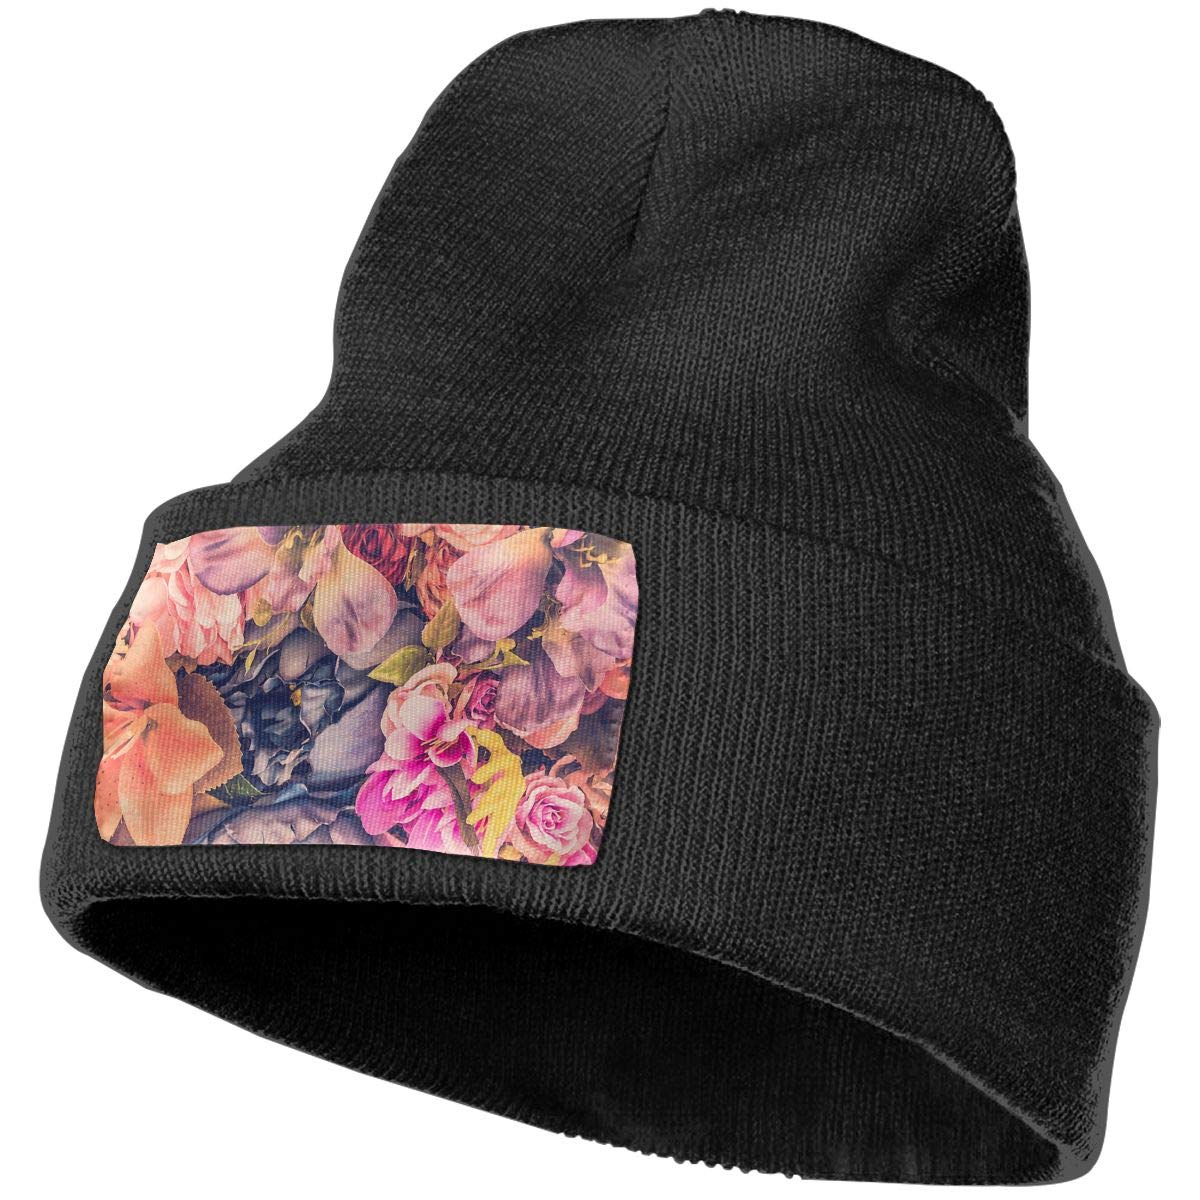 PCaag7v Beautiful Background with Different Flowers Beanie Hat Winter Solid Warm Knit Unisex Ski Skull Cap